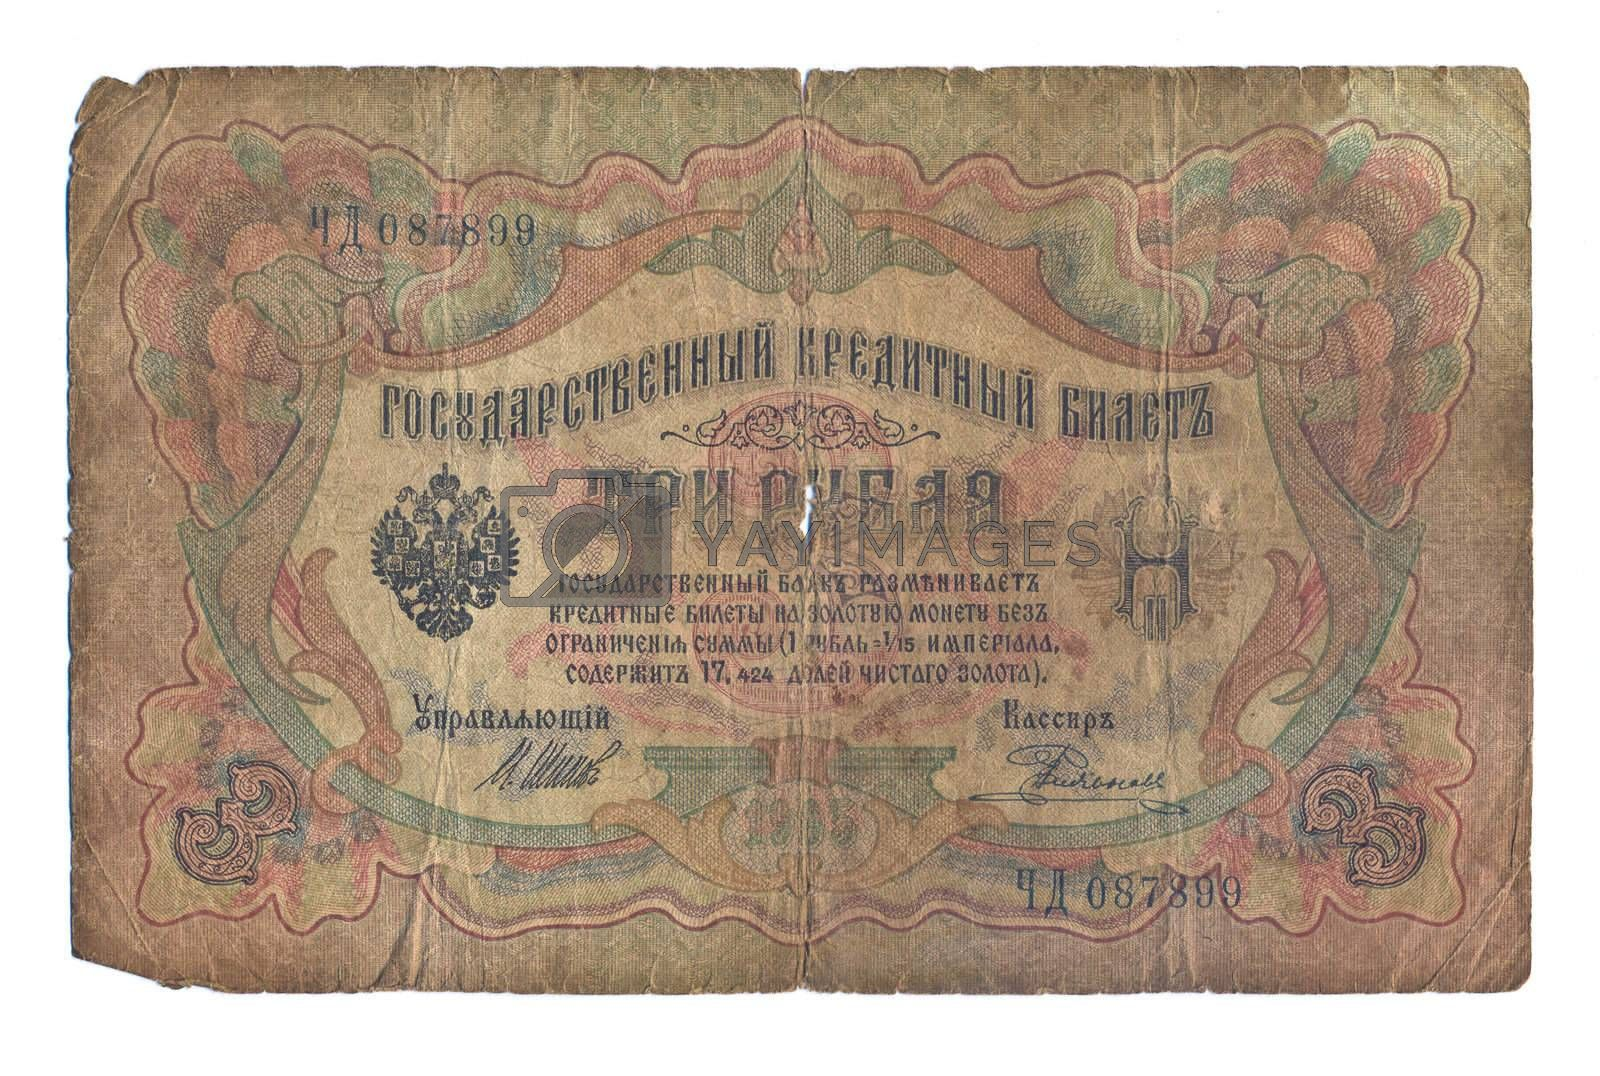 The scanned monetary denomination which is a museum piece, advantage in 3 roubles, let out at the time of Imperial Russia